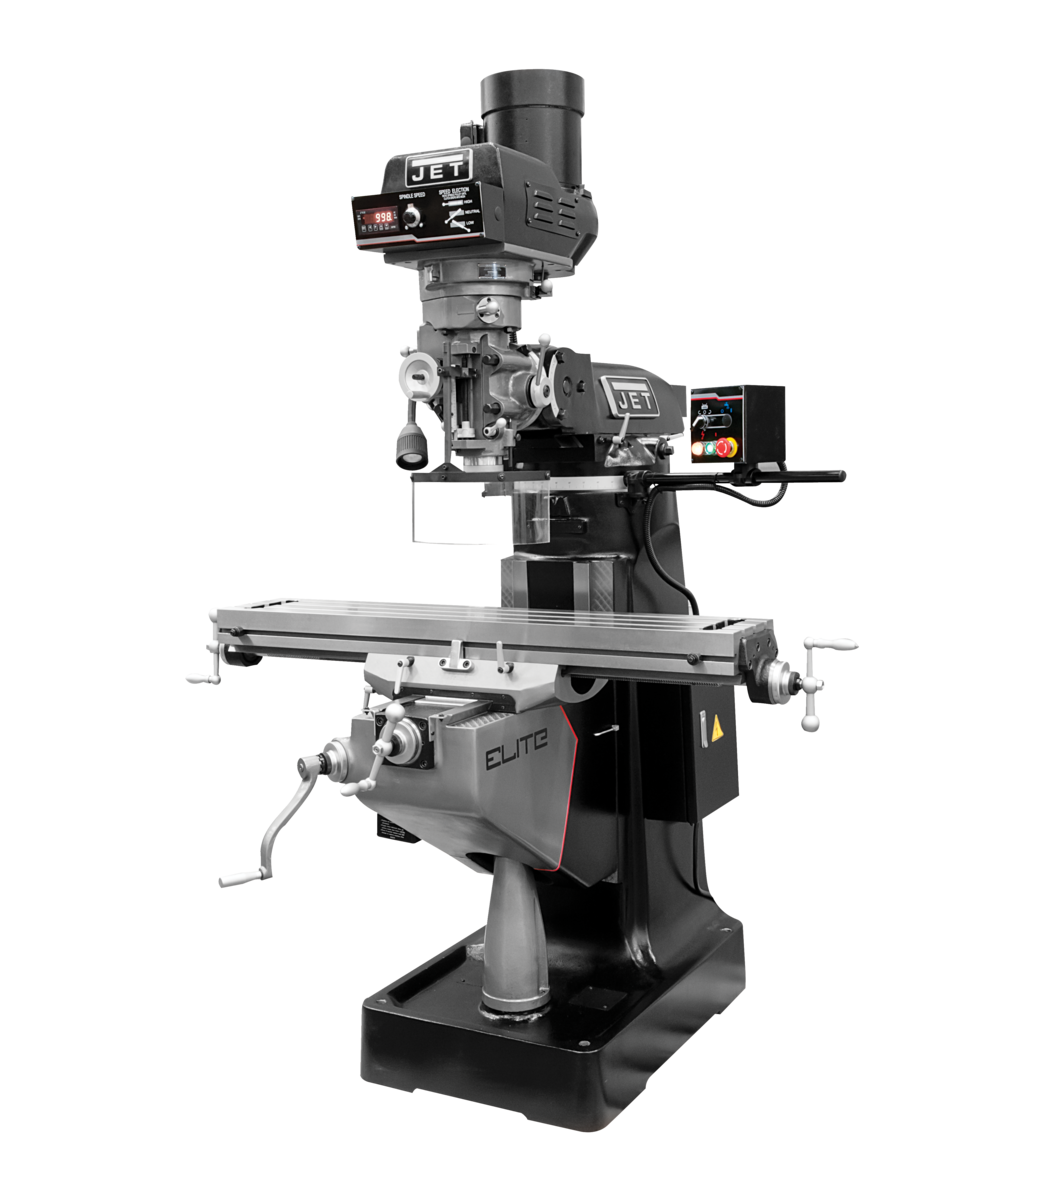 EVS-949 Mill with 2-Axis ACU-RITE 203 DRO and Servo X, Y-Axis Powerfeeds and USA Air Powered Draw Bar